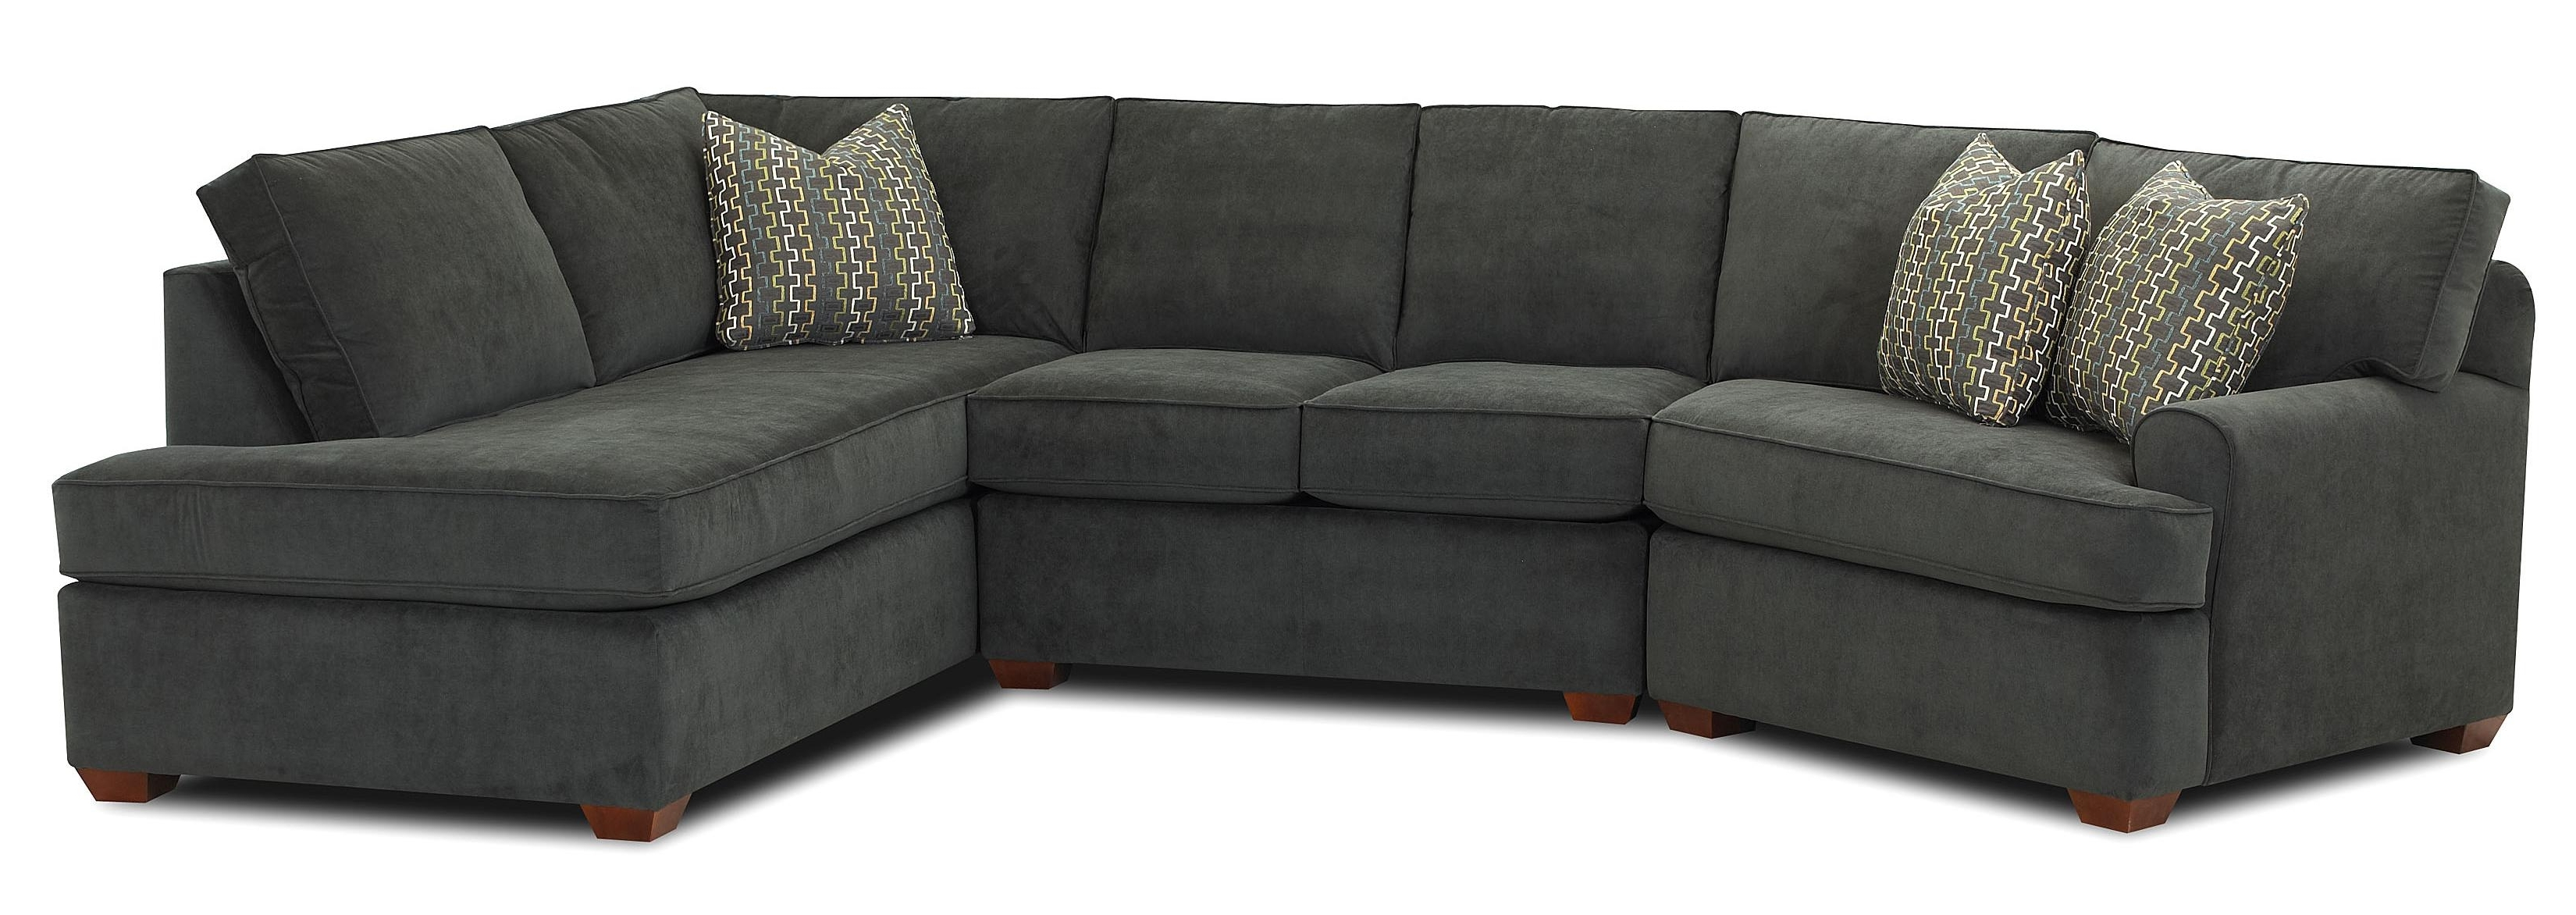 Widely Used Gardiners Sectional Sofas Throughout Sectional Sofa With Right Facing Sofa Chaiseklaussner (View 16 of 20)